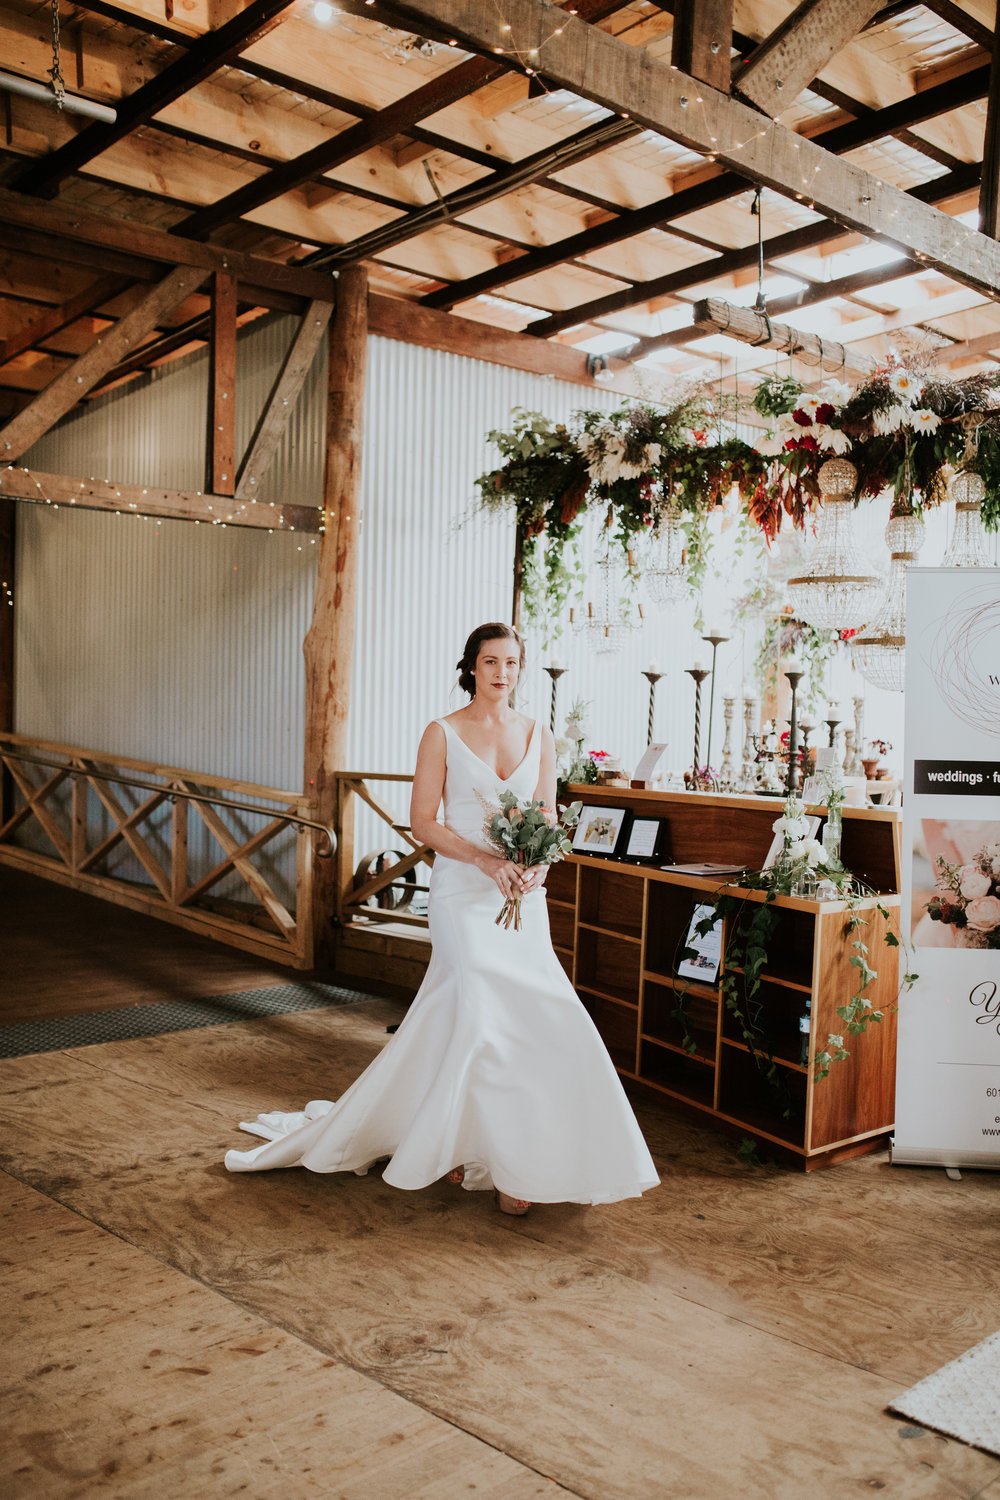 The Woolshed Wedding Expo _ Alana Taylor Photography-low-res-79.jpg